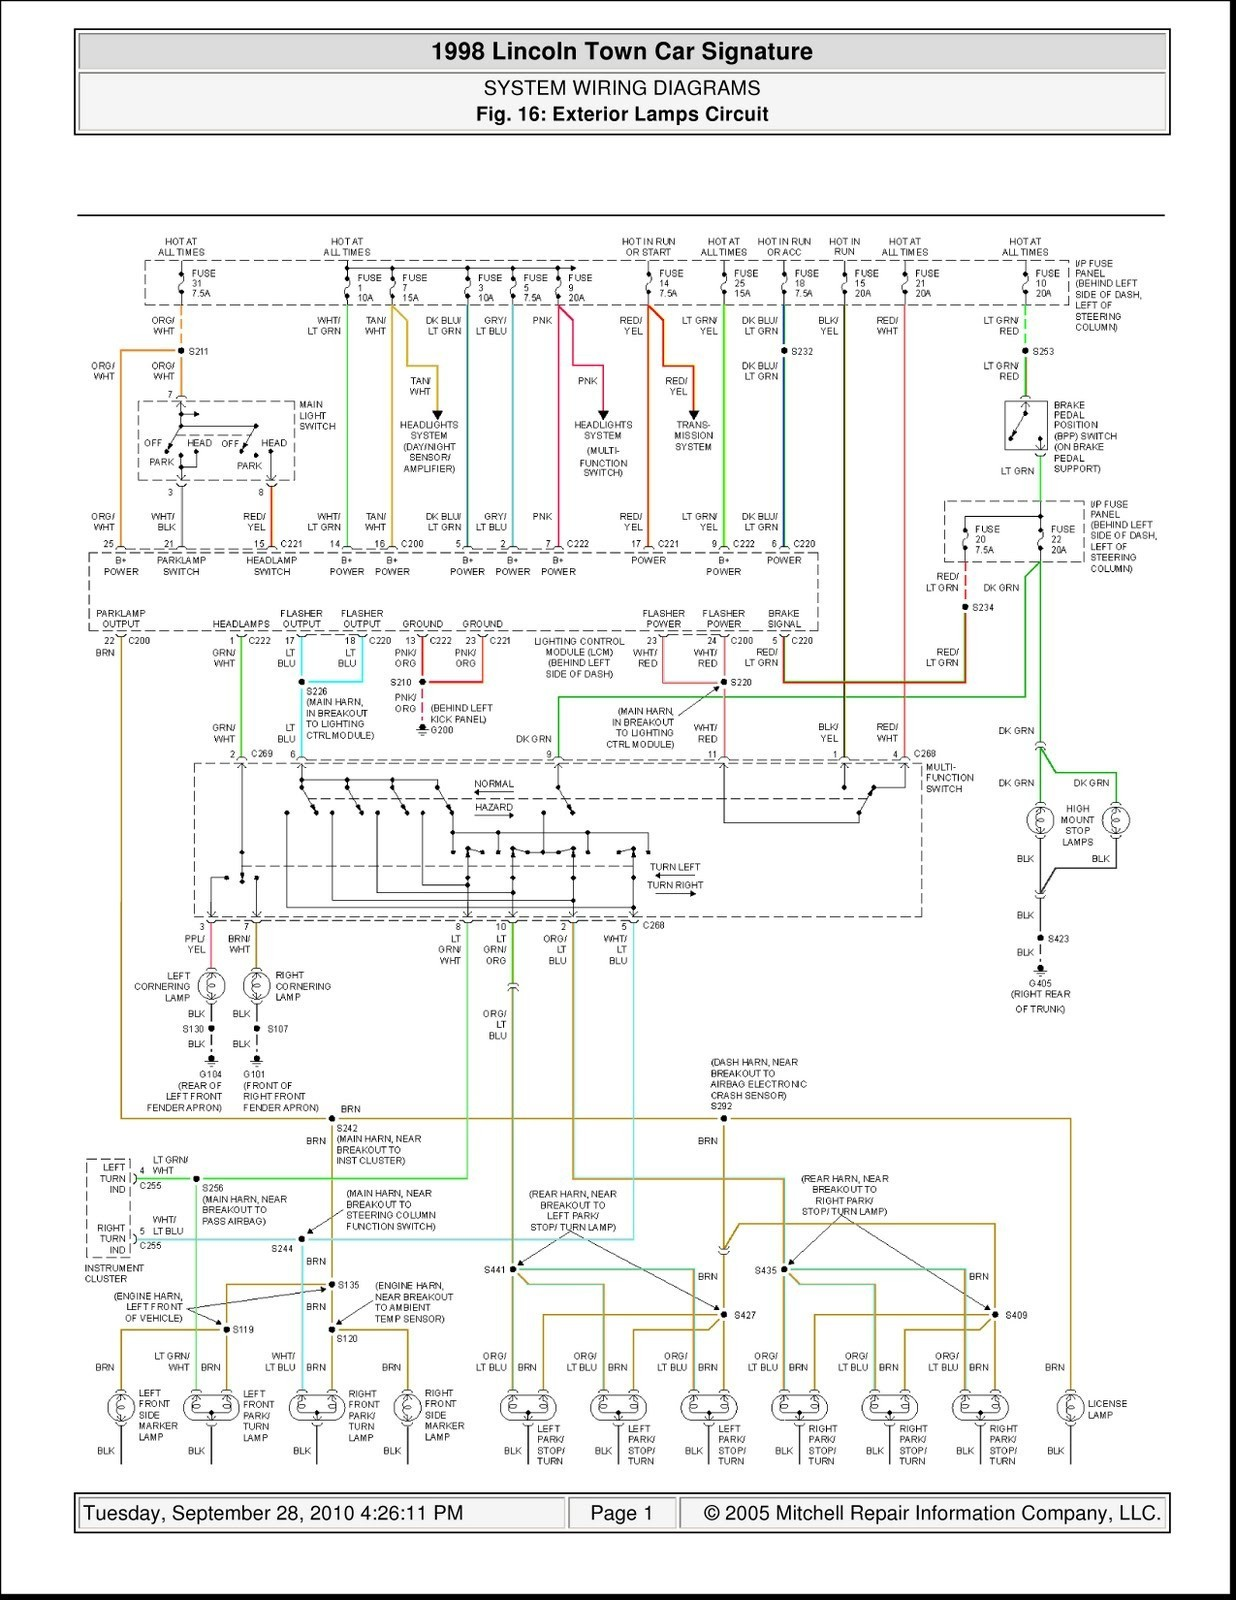 2000 Lincoln Ls V8 Engine Diagram Lincoln Continental Engine Diagram Worksheet and Wiring Diagram • Of 2000 Lincoln Ls V8 Engine Diagram Wiring Diagram 2001 Lincoln Ls Rear Worksheet and Wiring Diagram •